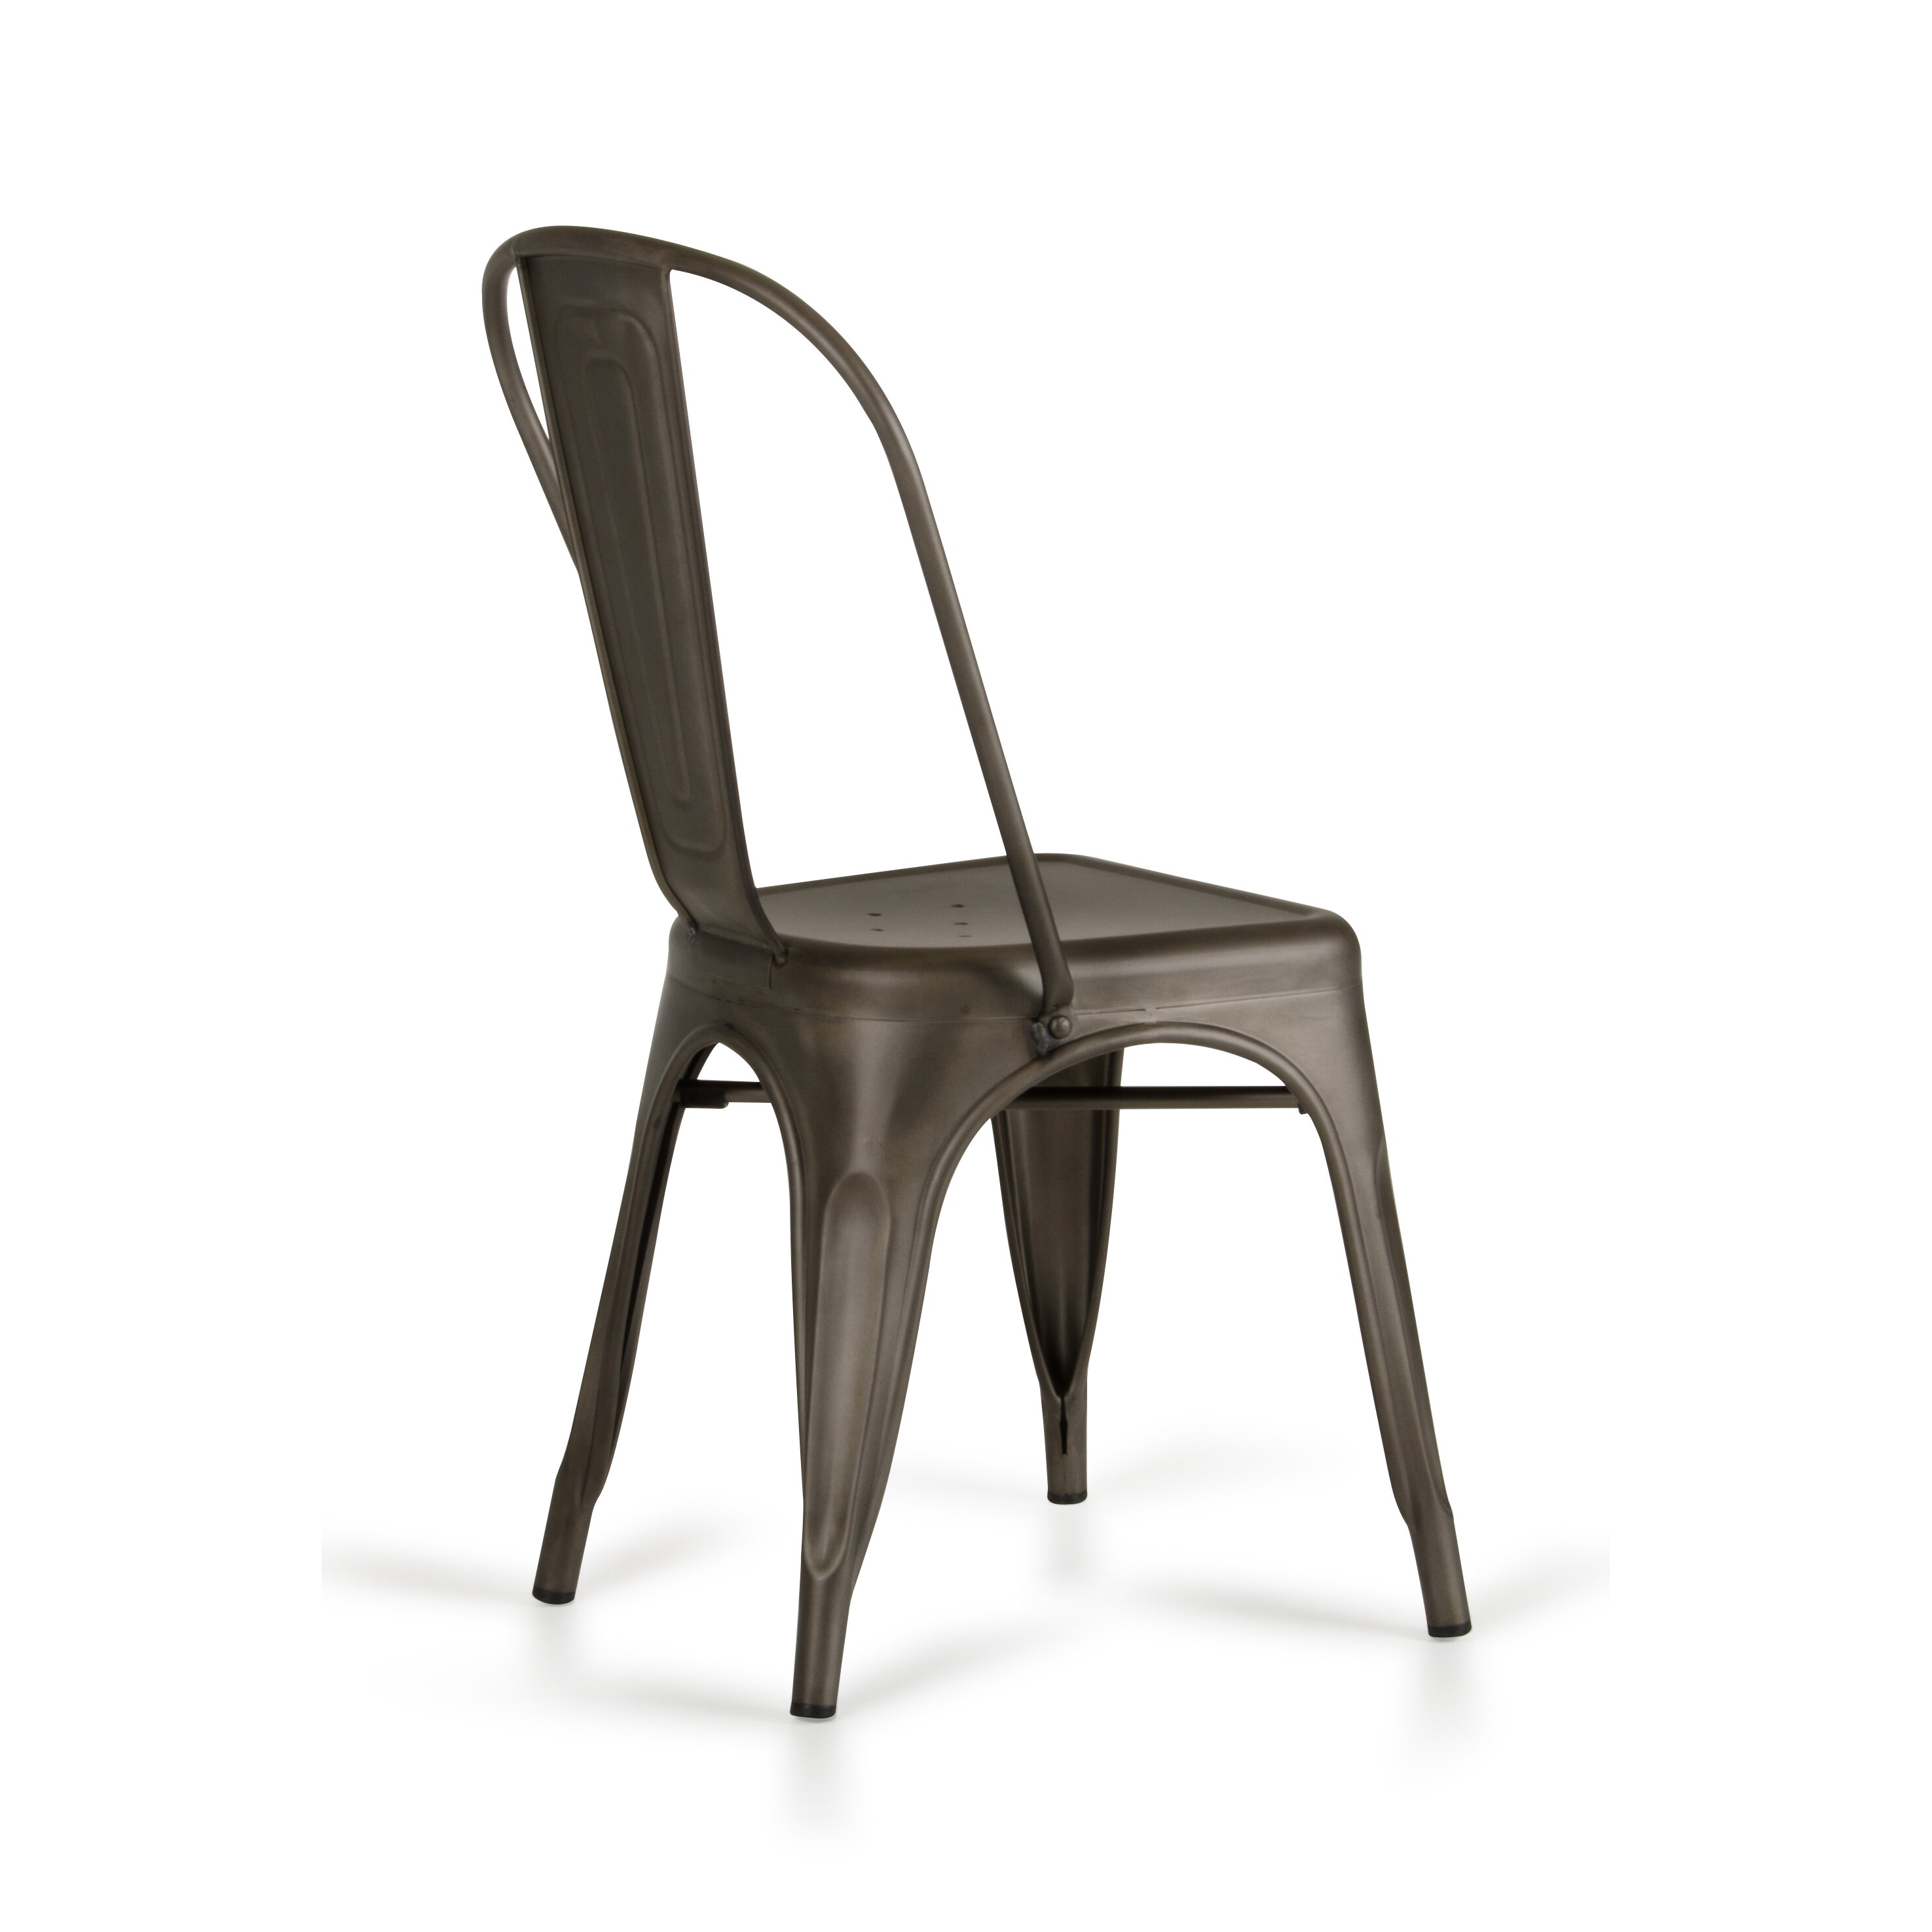 Laurel foundry modern farmhouse drummond rust metal dining for Modern metal chairs